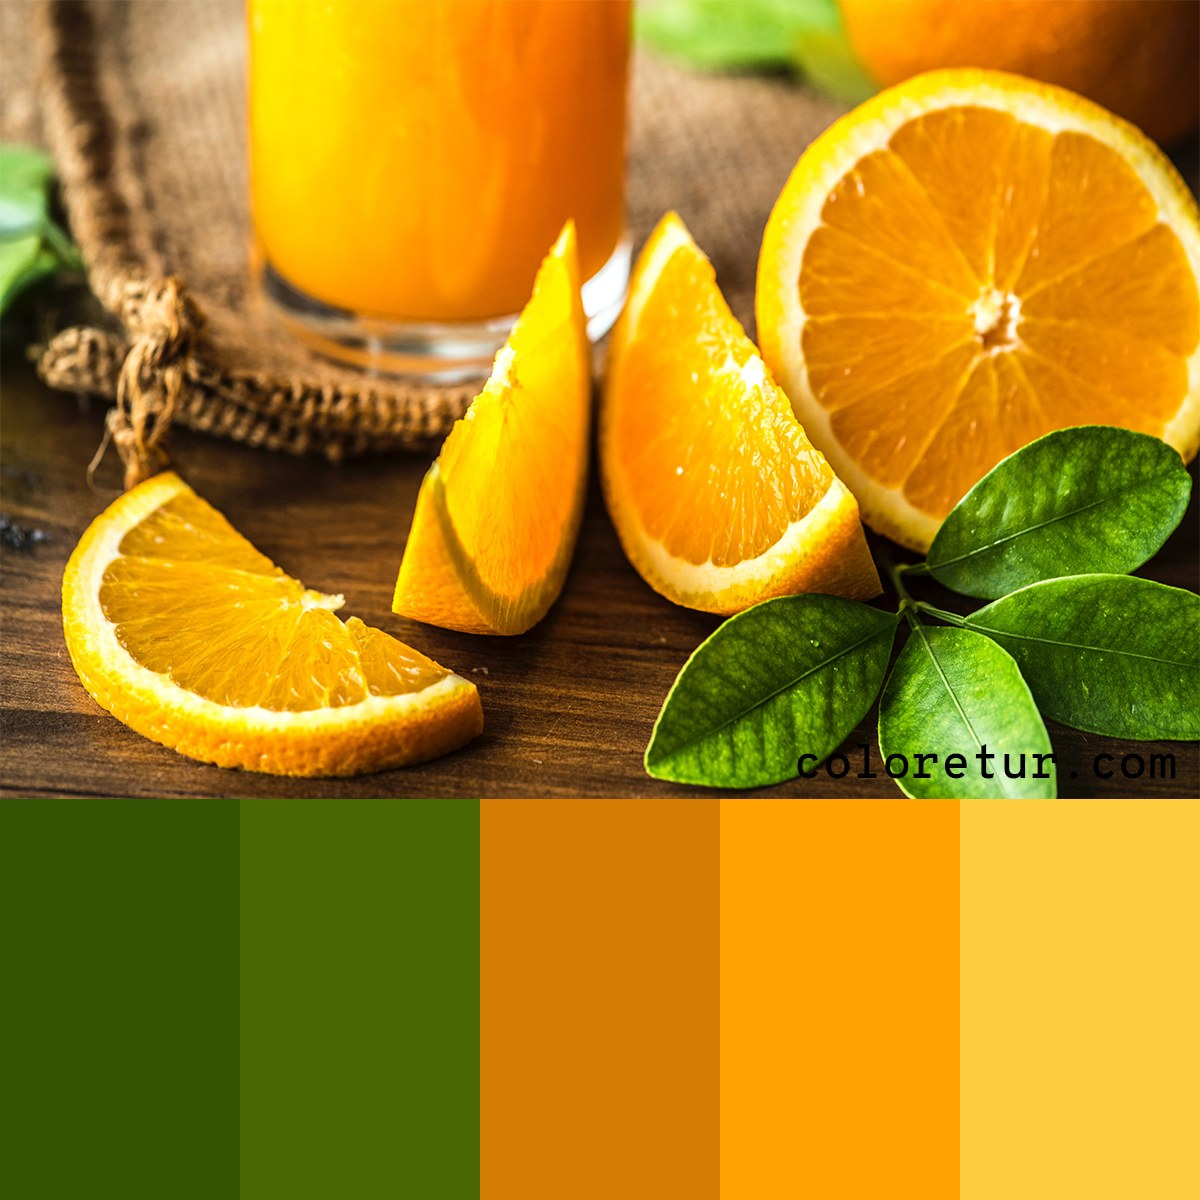 A bright, zesty palette with fresh oranges and greens